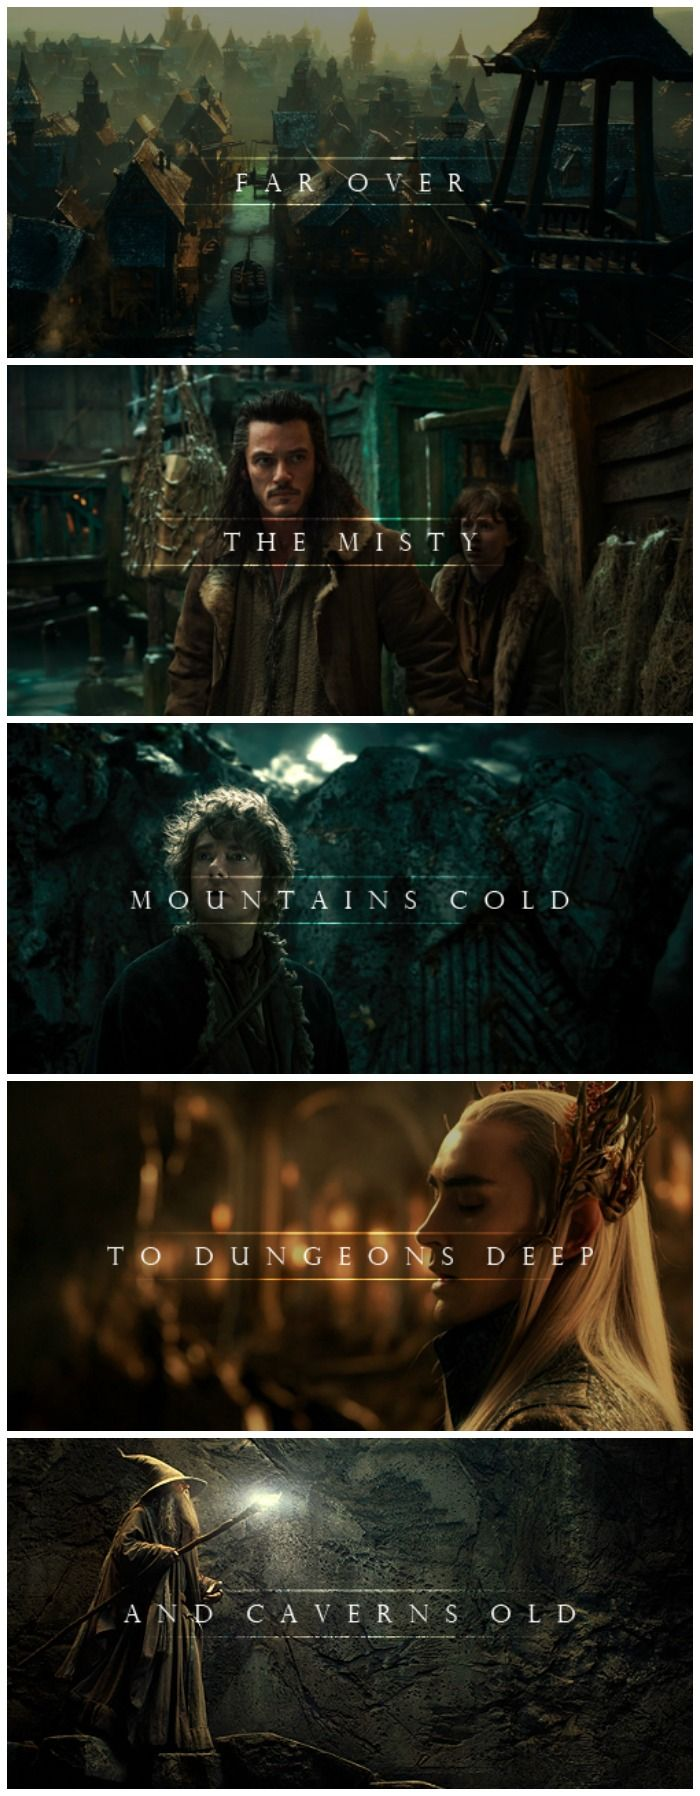 Far over the misty mountains cold     To dungeons deep and caverns old   The pines were roaring.....